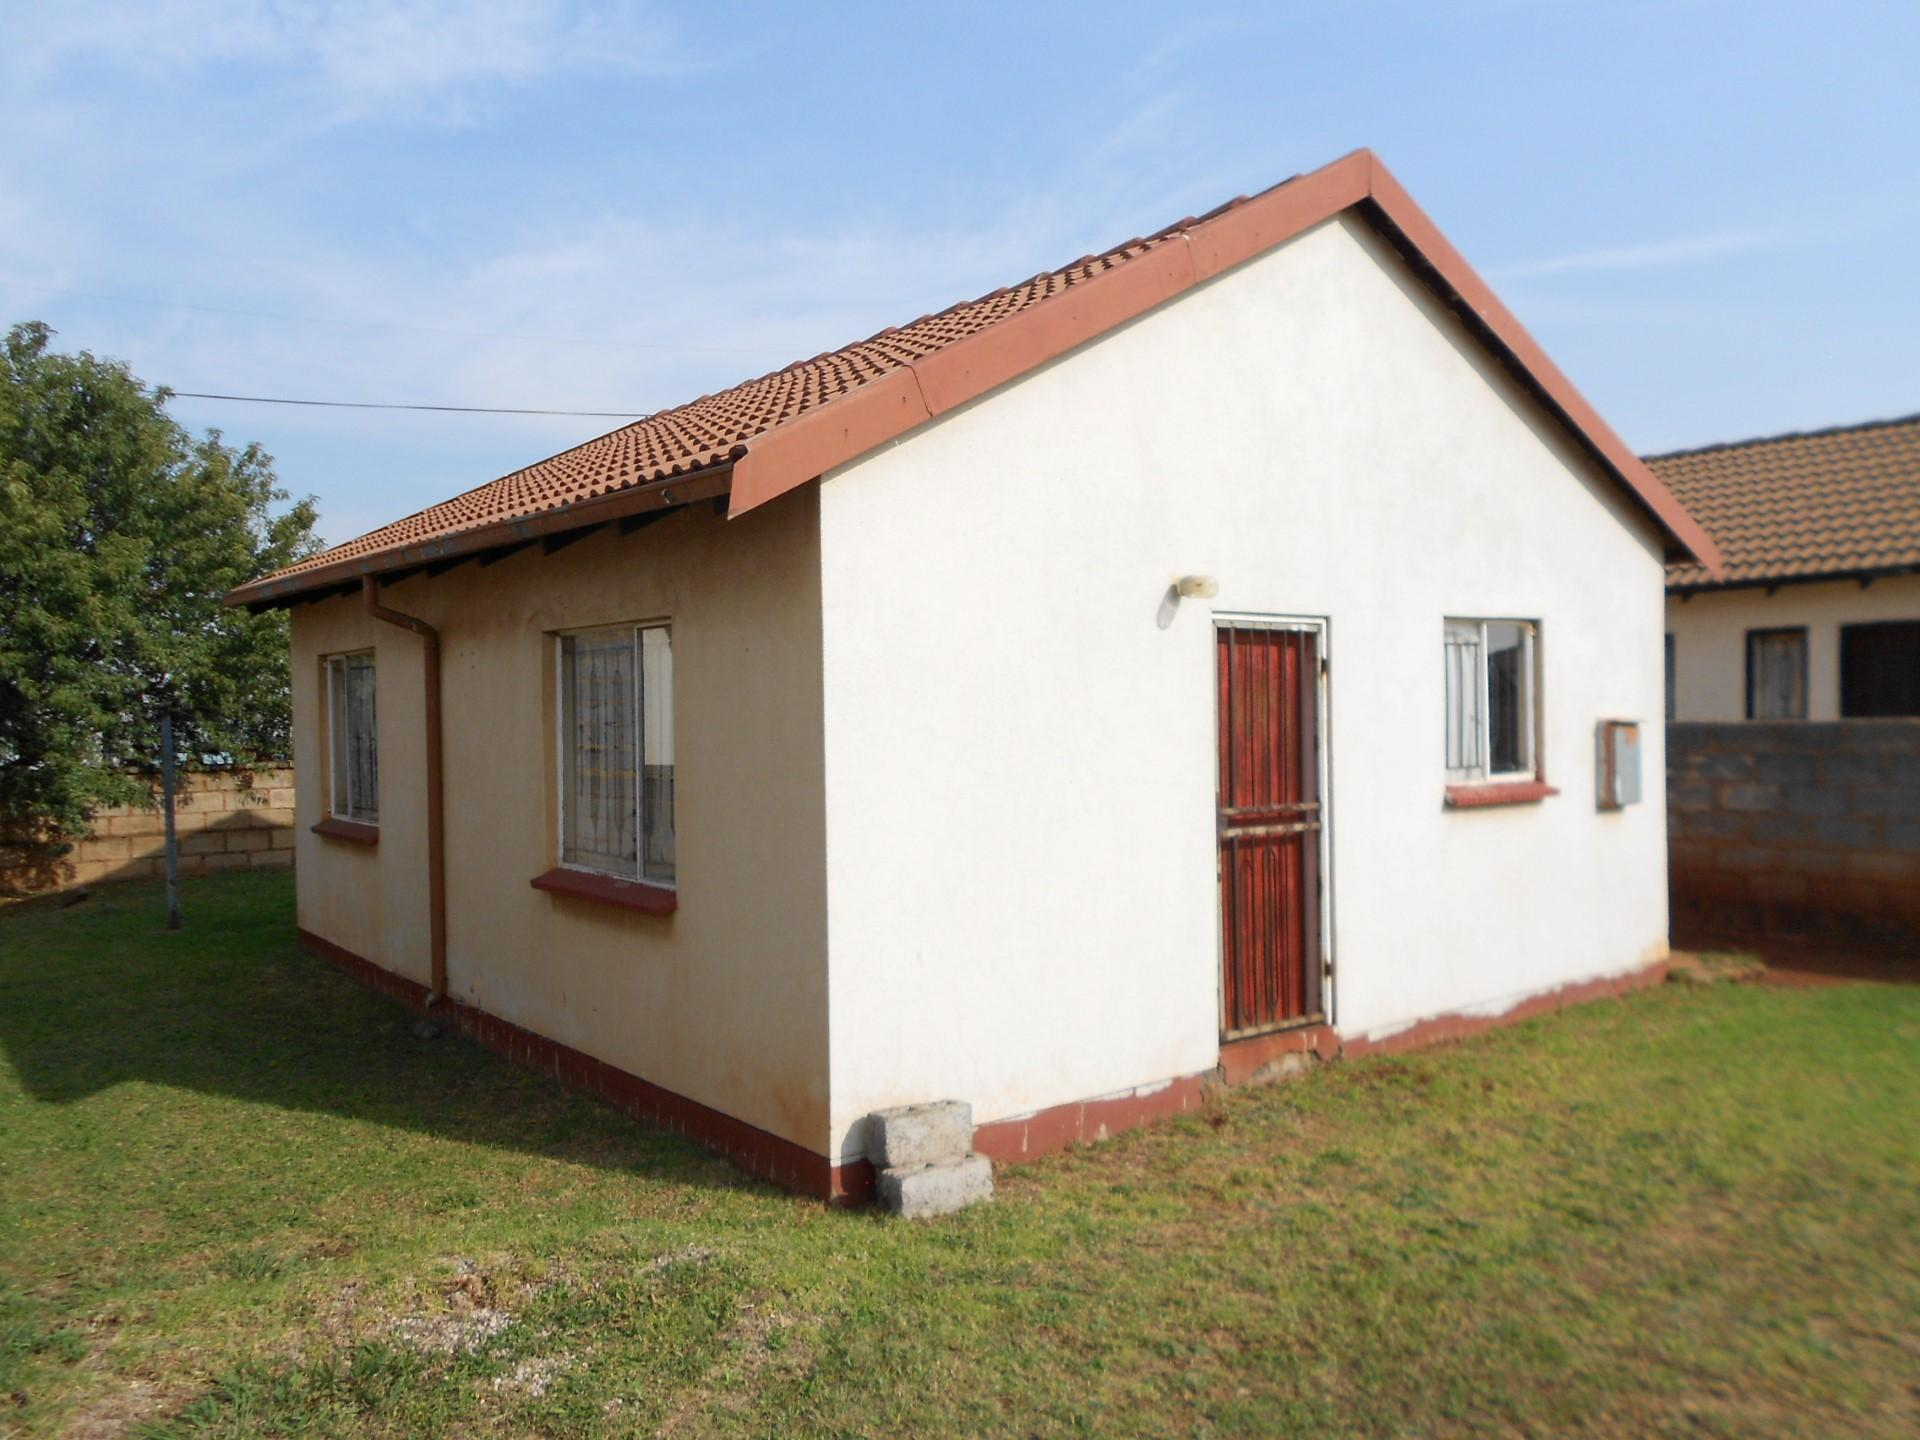 2 bedroom house for sale for sale in thokoza